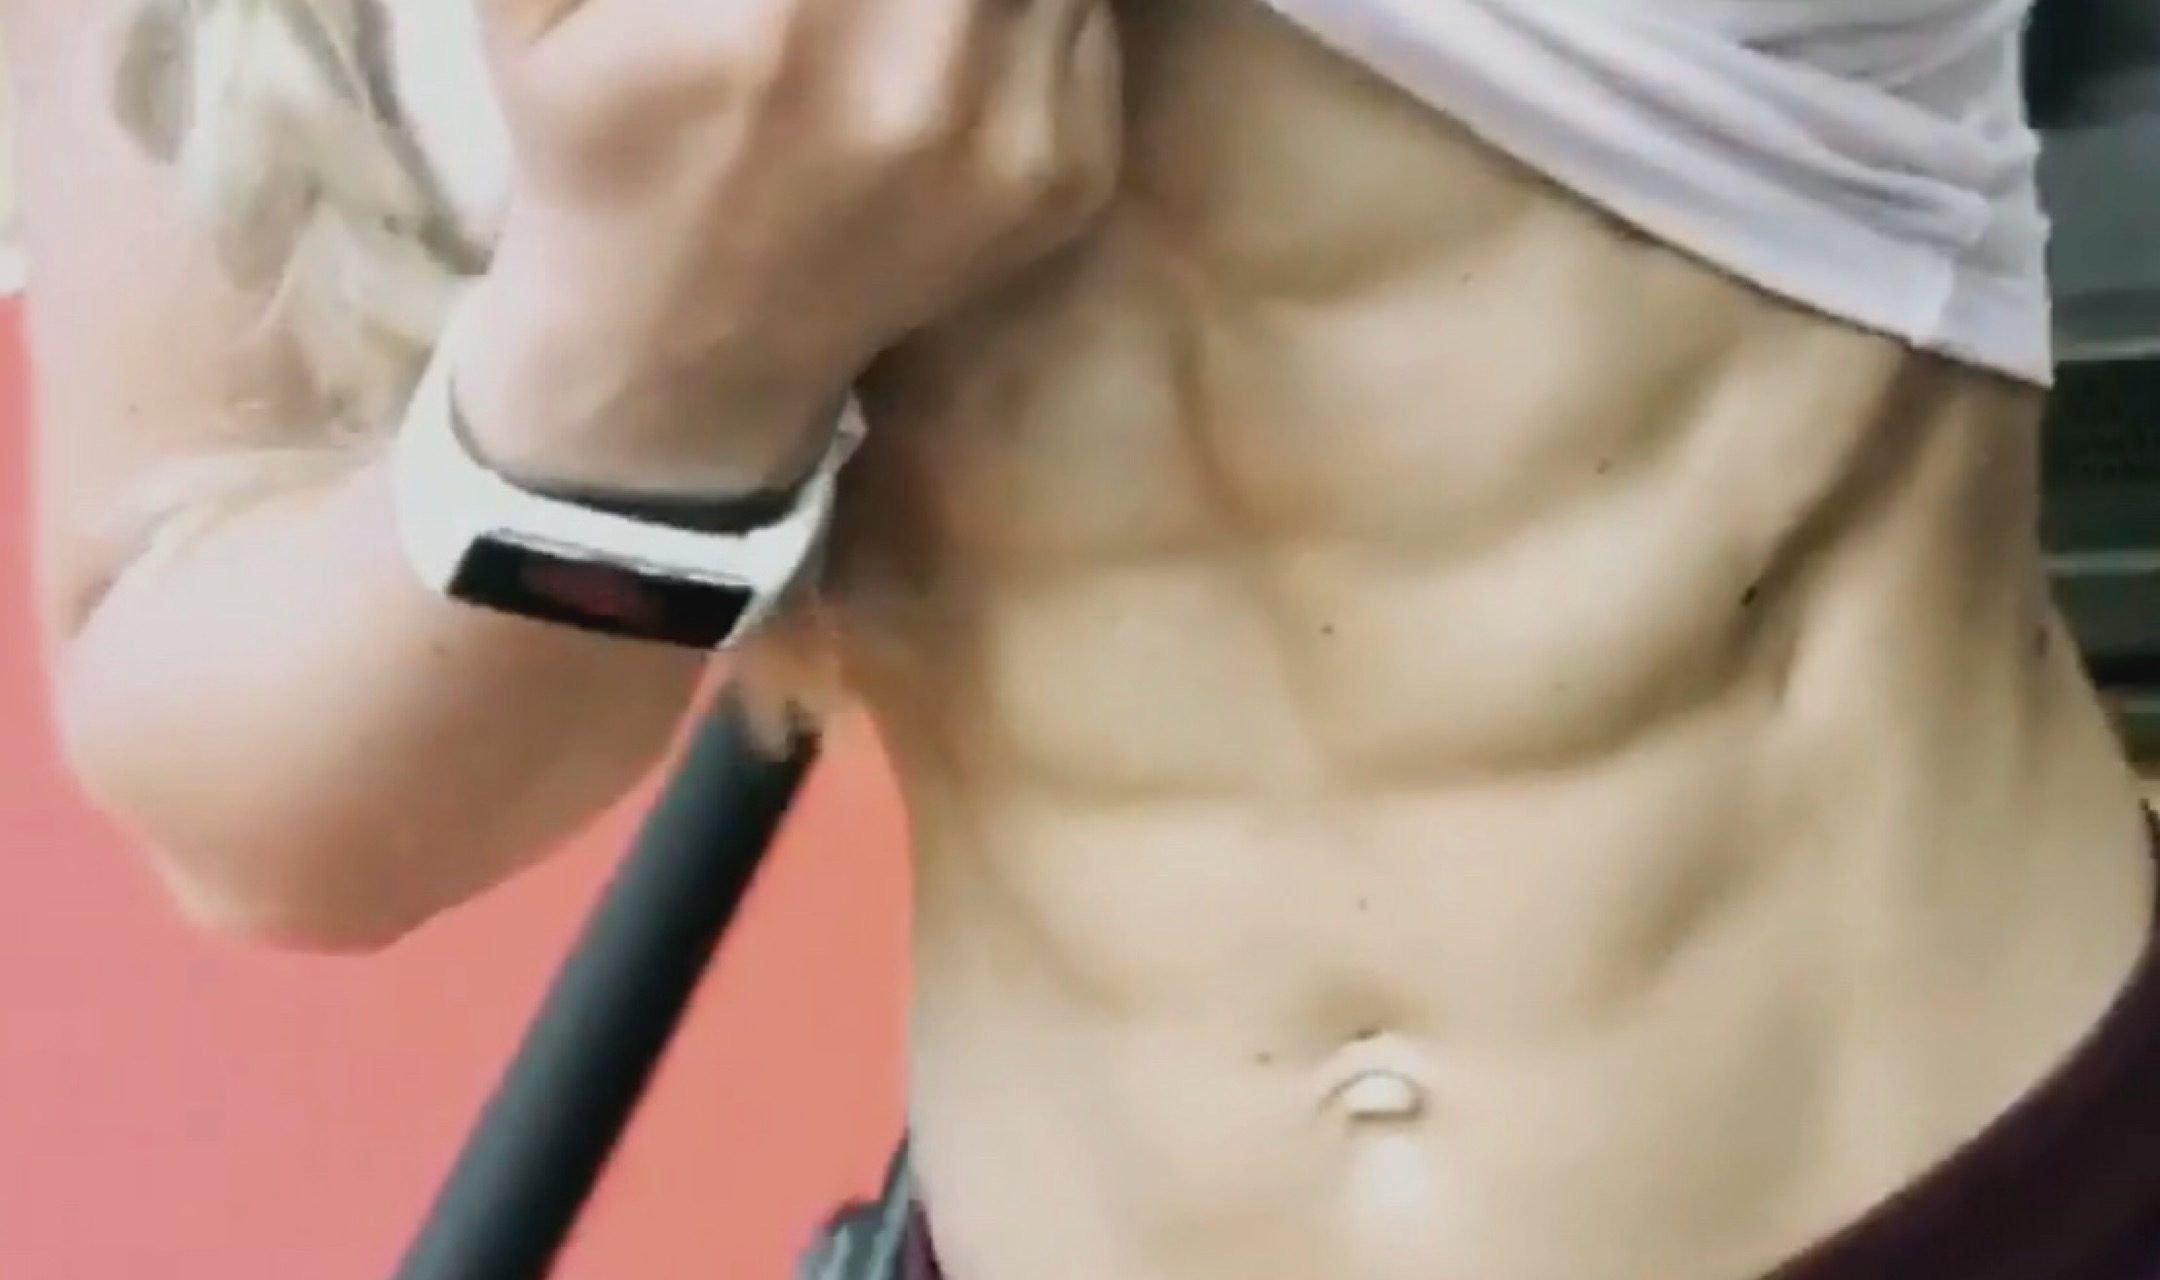 LET'S TALK ABOUT ABS?